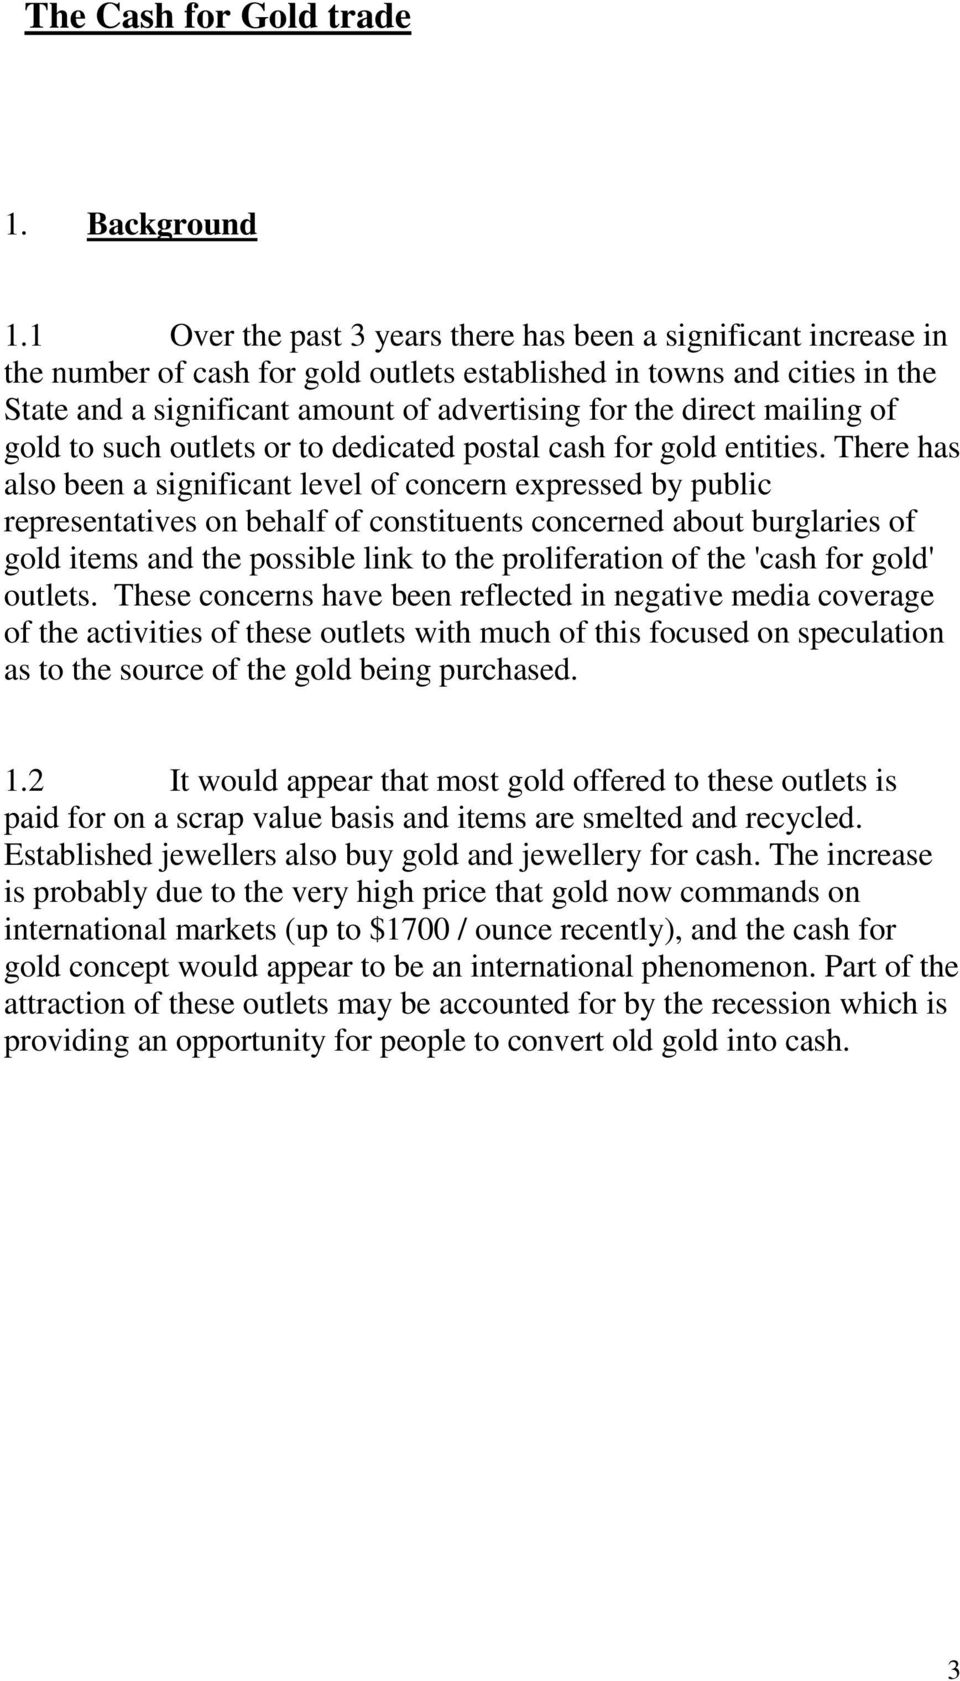 direct mailing of gold to such outlets or to dedicated postal cash for gold entities.